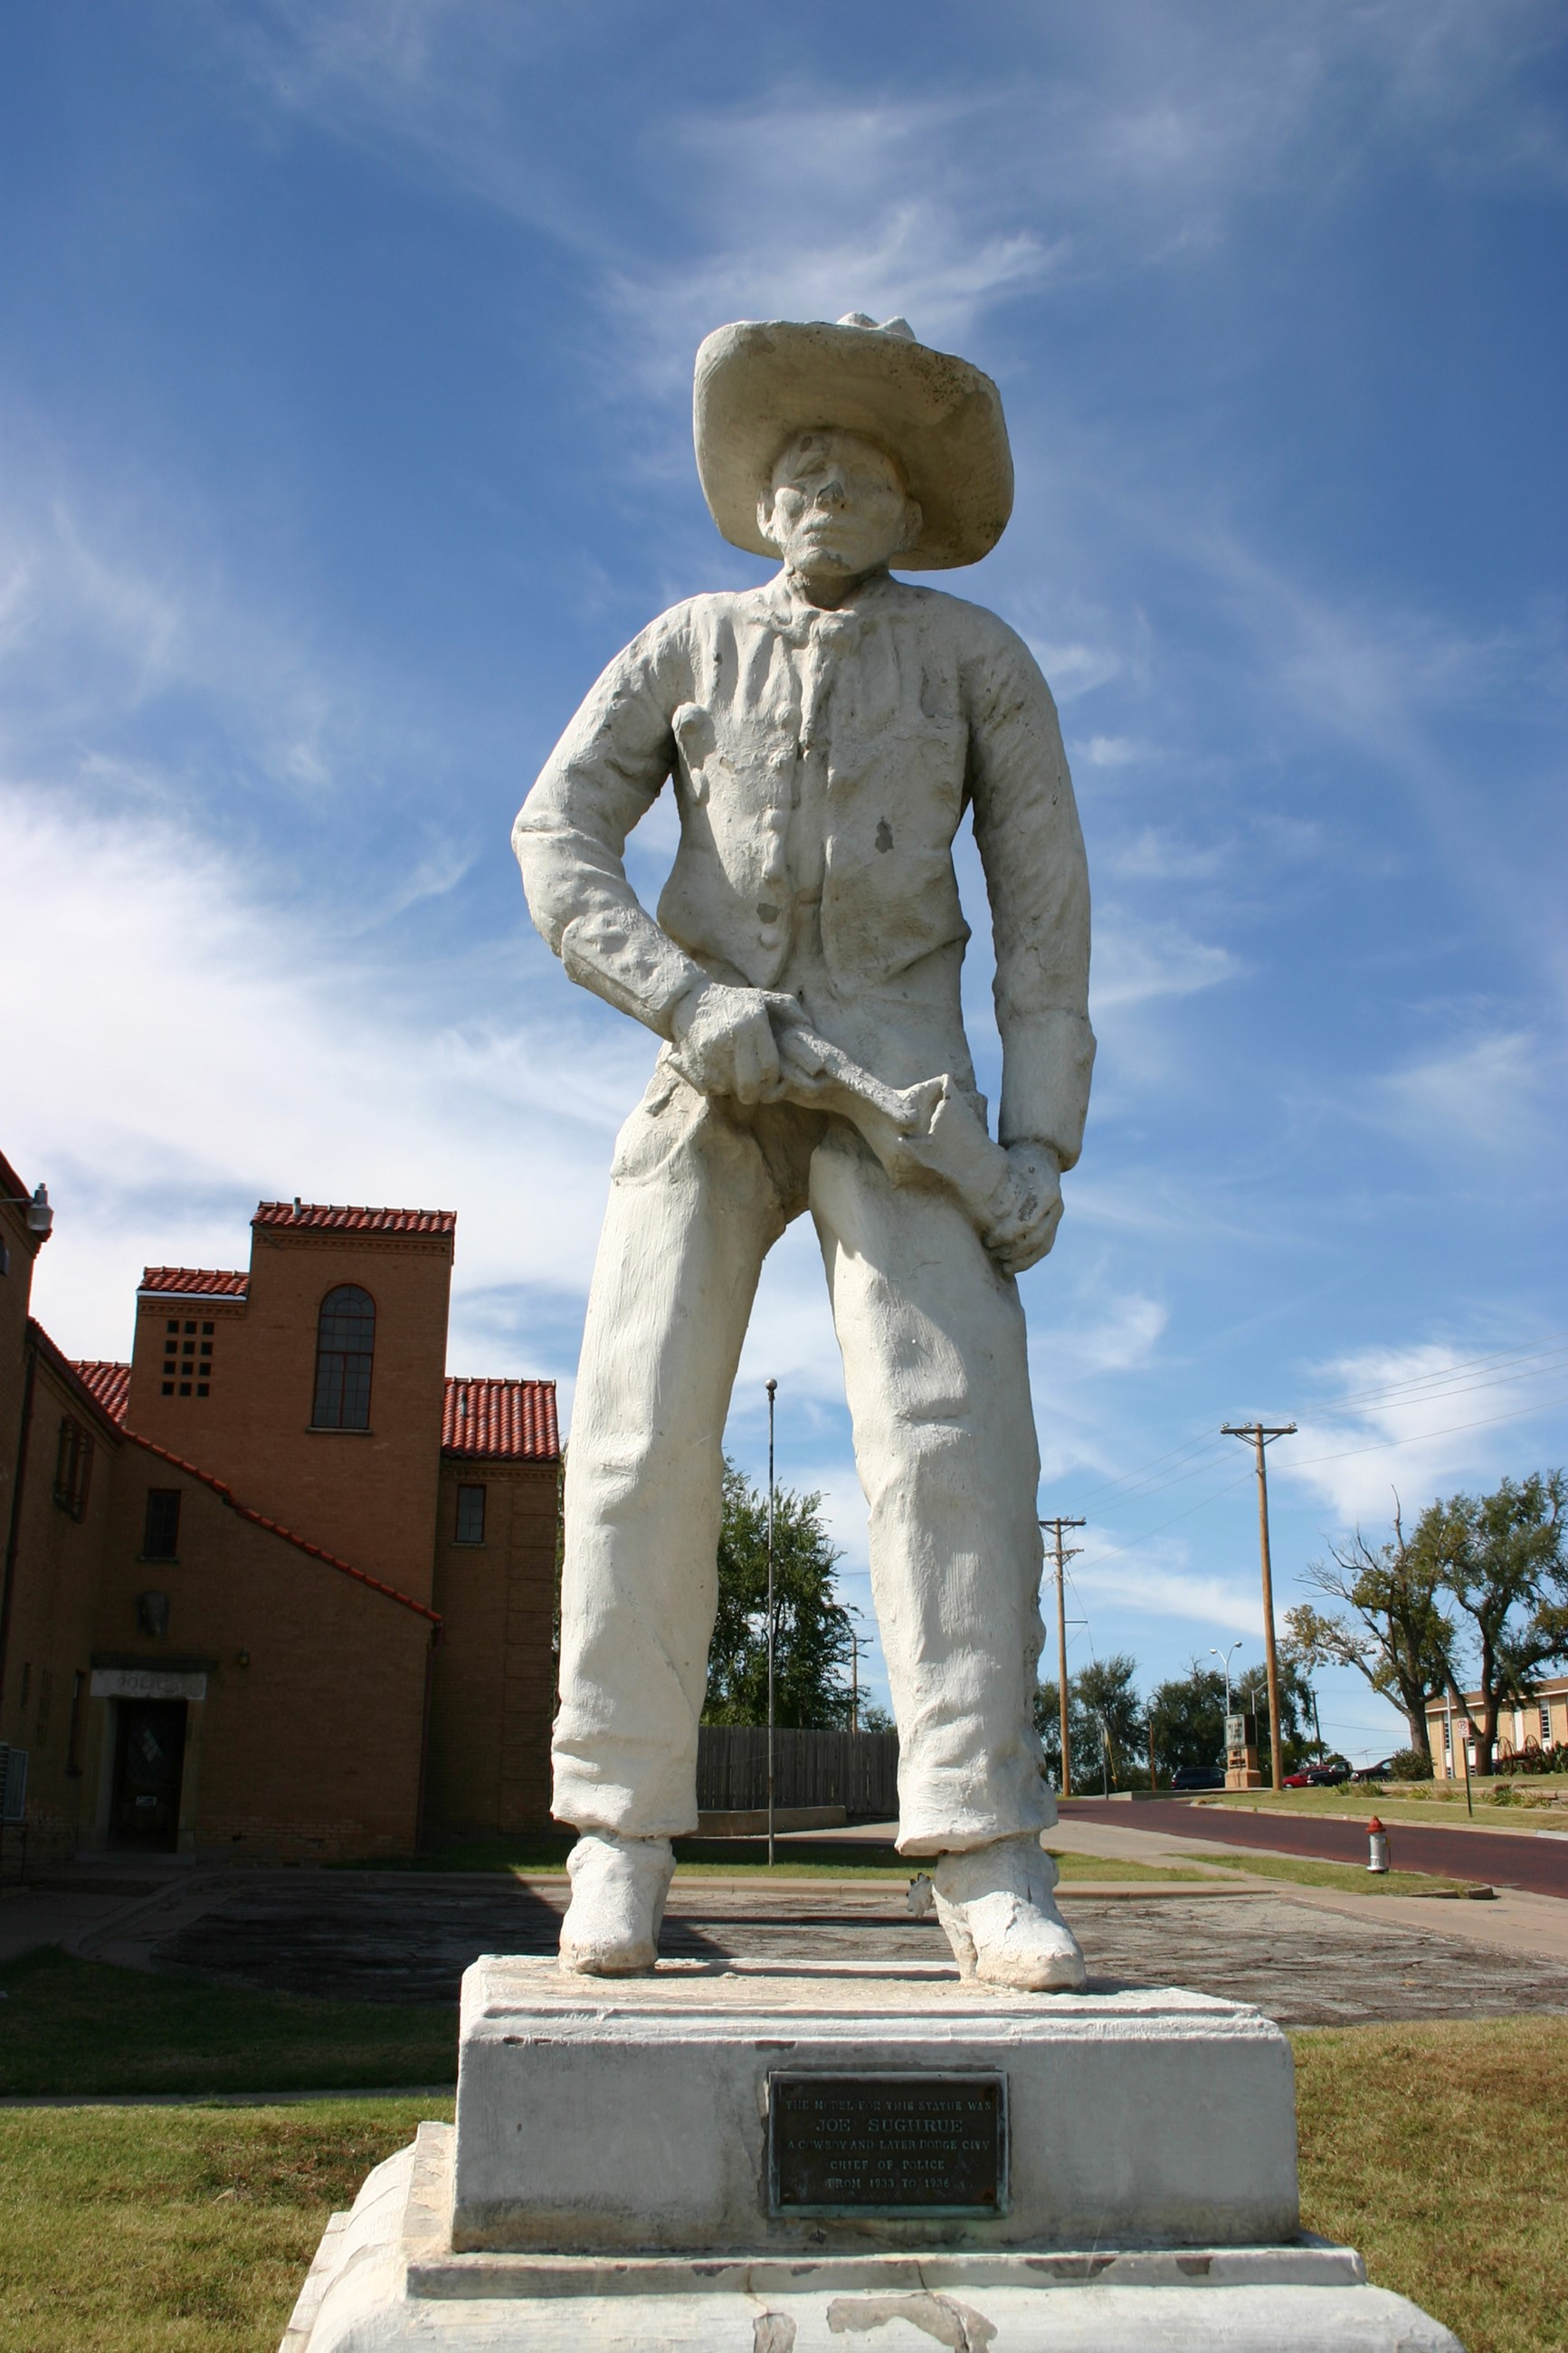 Historic sculpture found in Dodge City